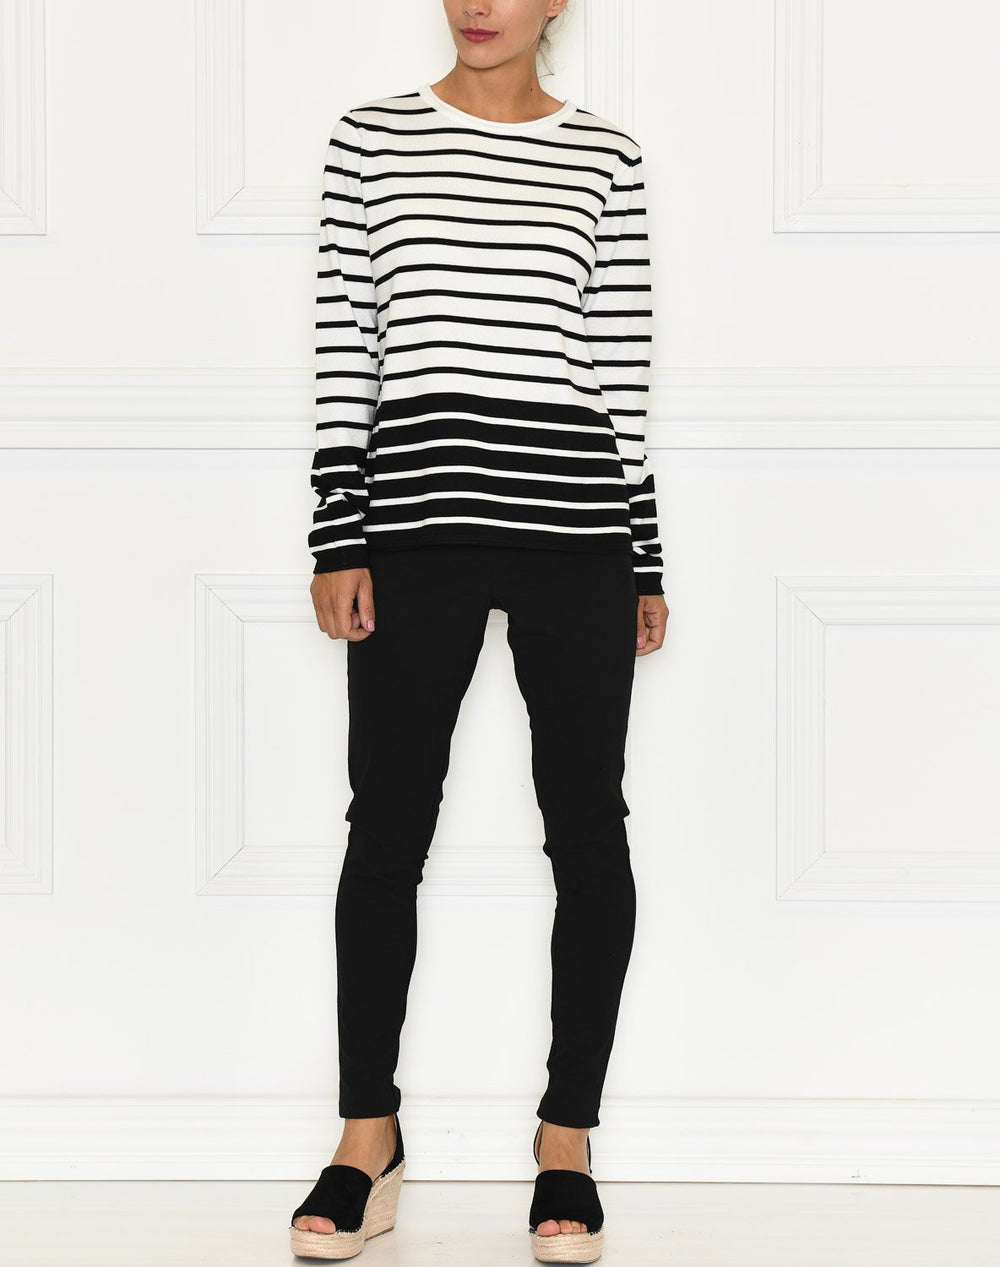 Soft Rebels Zara O-neck knit roll edge blocking stripe snow white / off white - Online-Mode